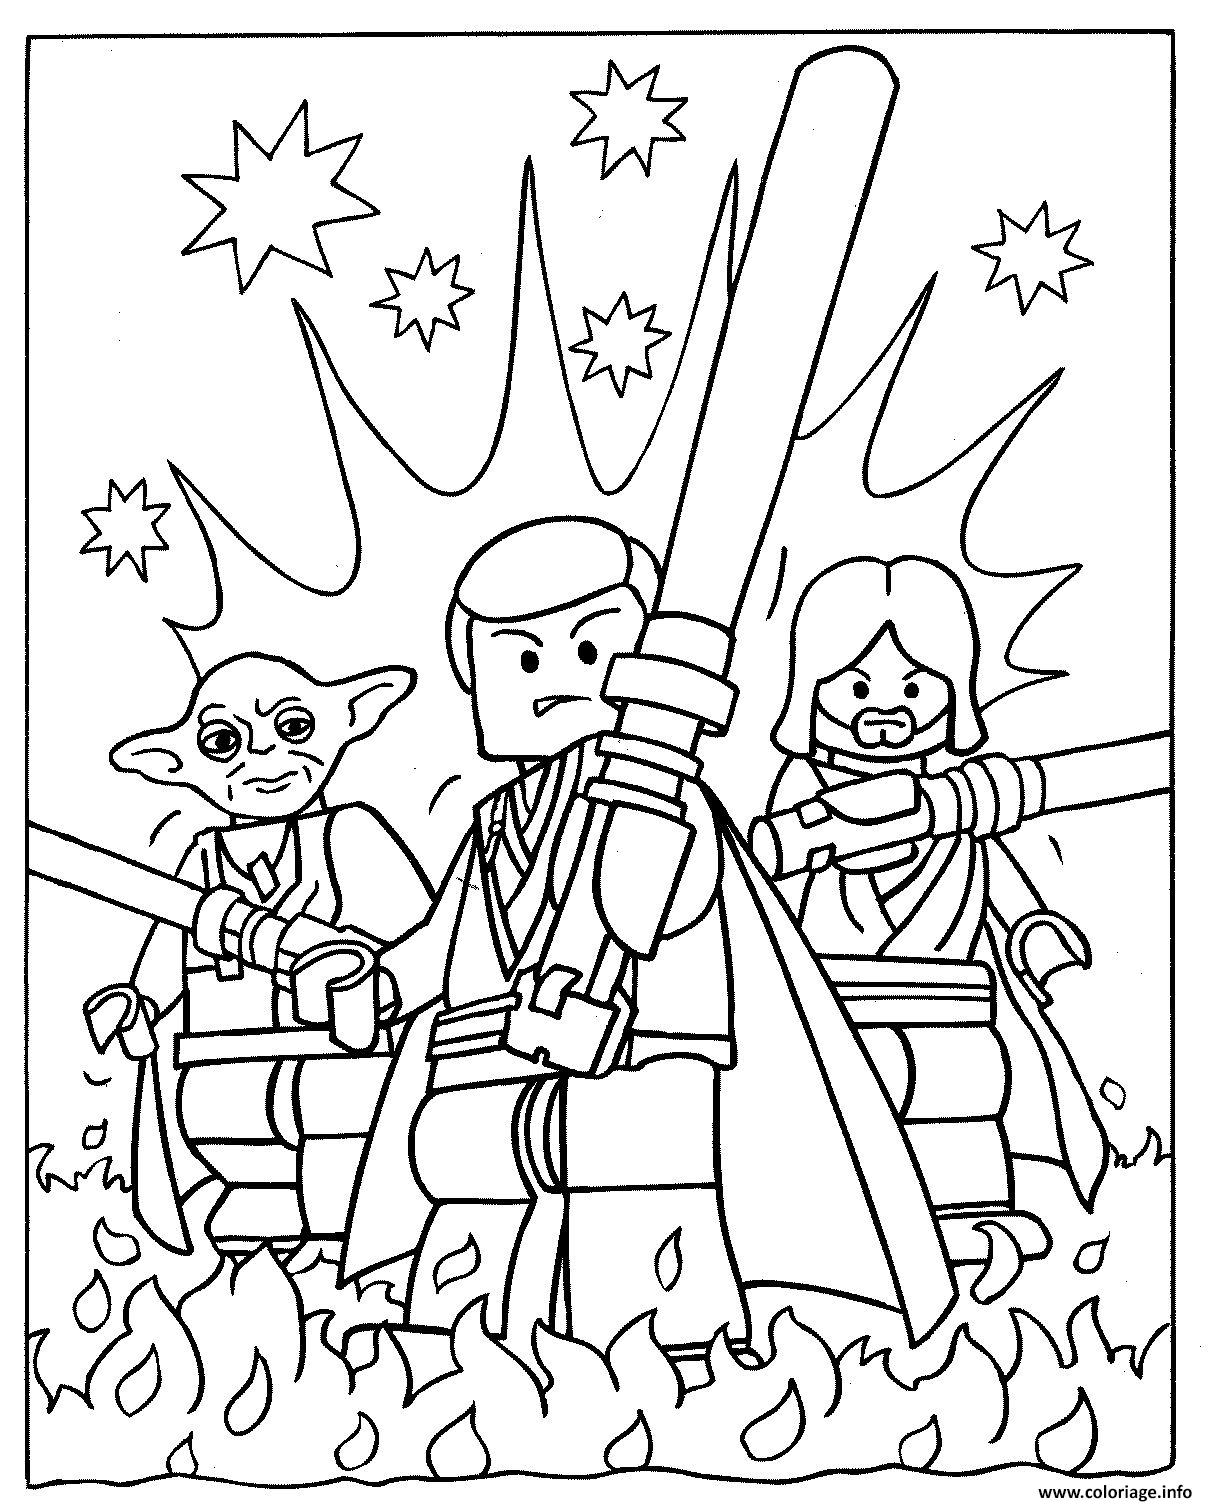 Coloriage lego star wars 3 - Coloriage star wars 3 ...